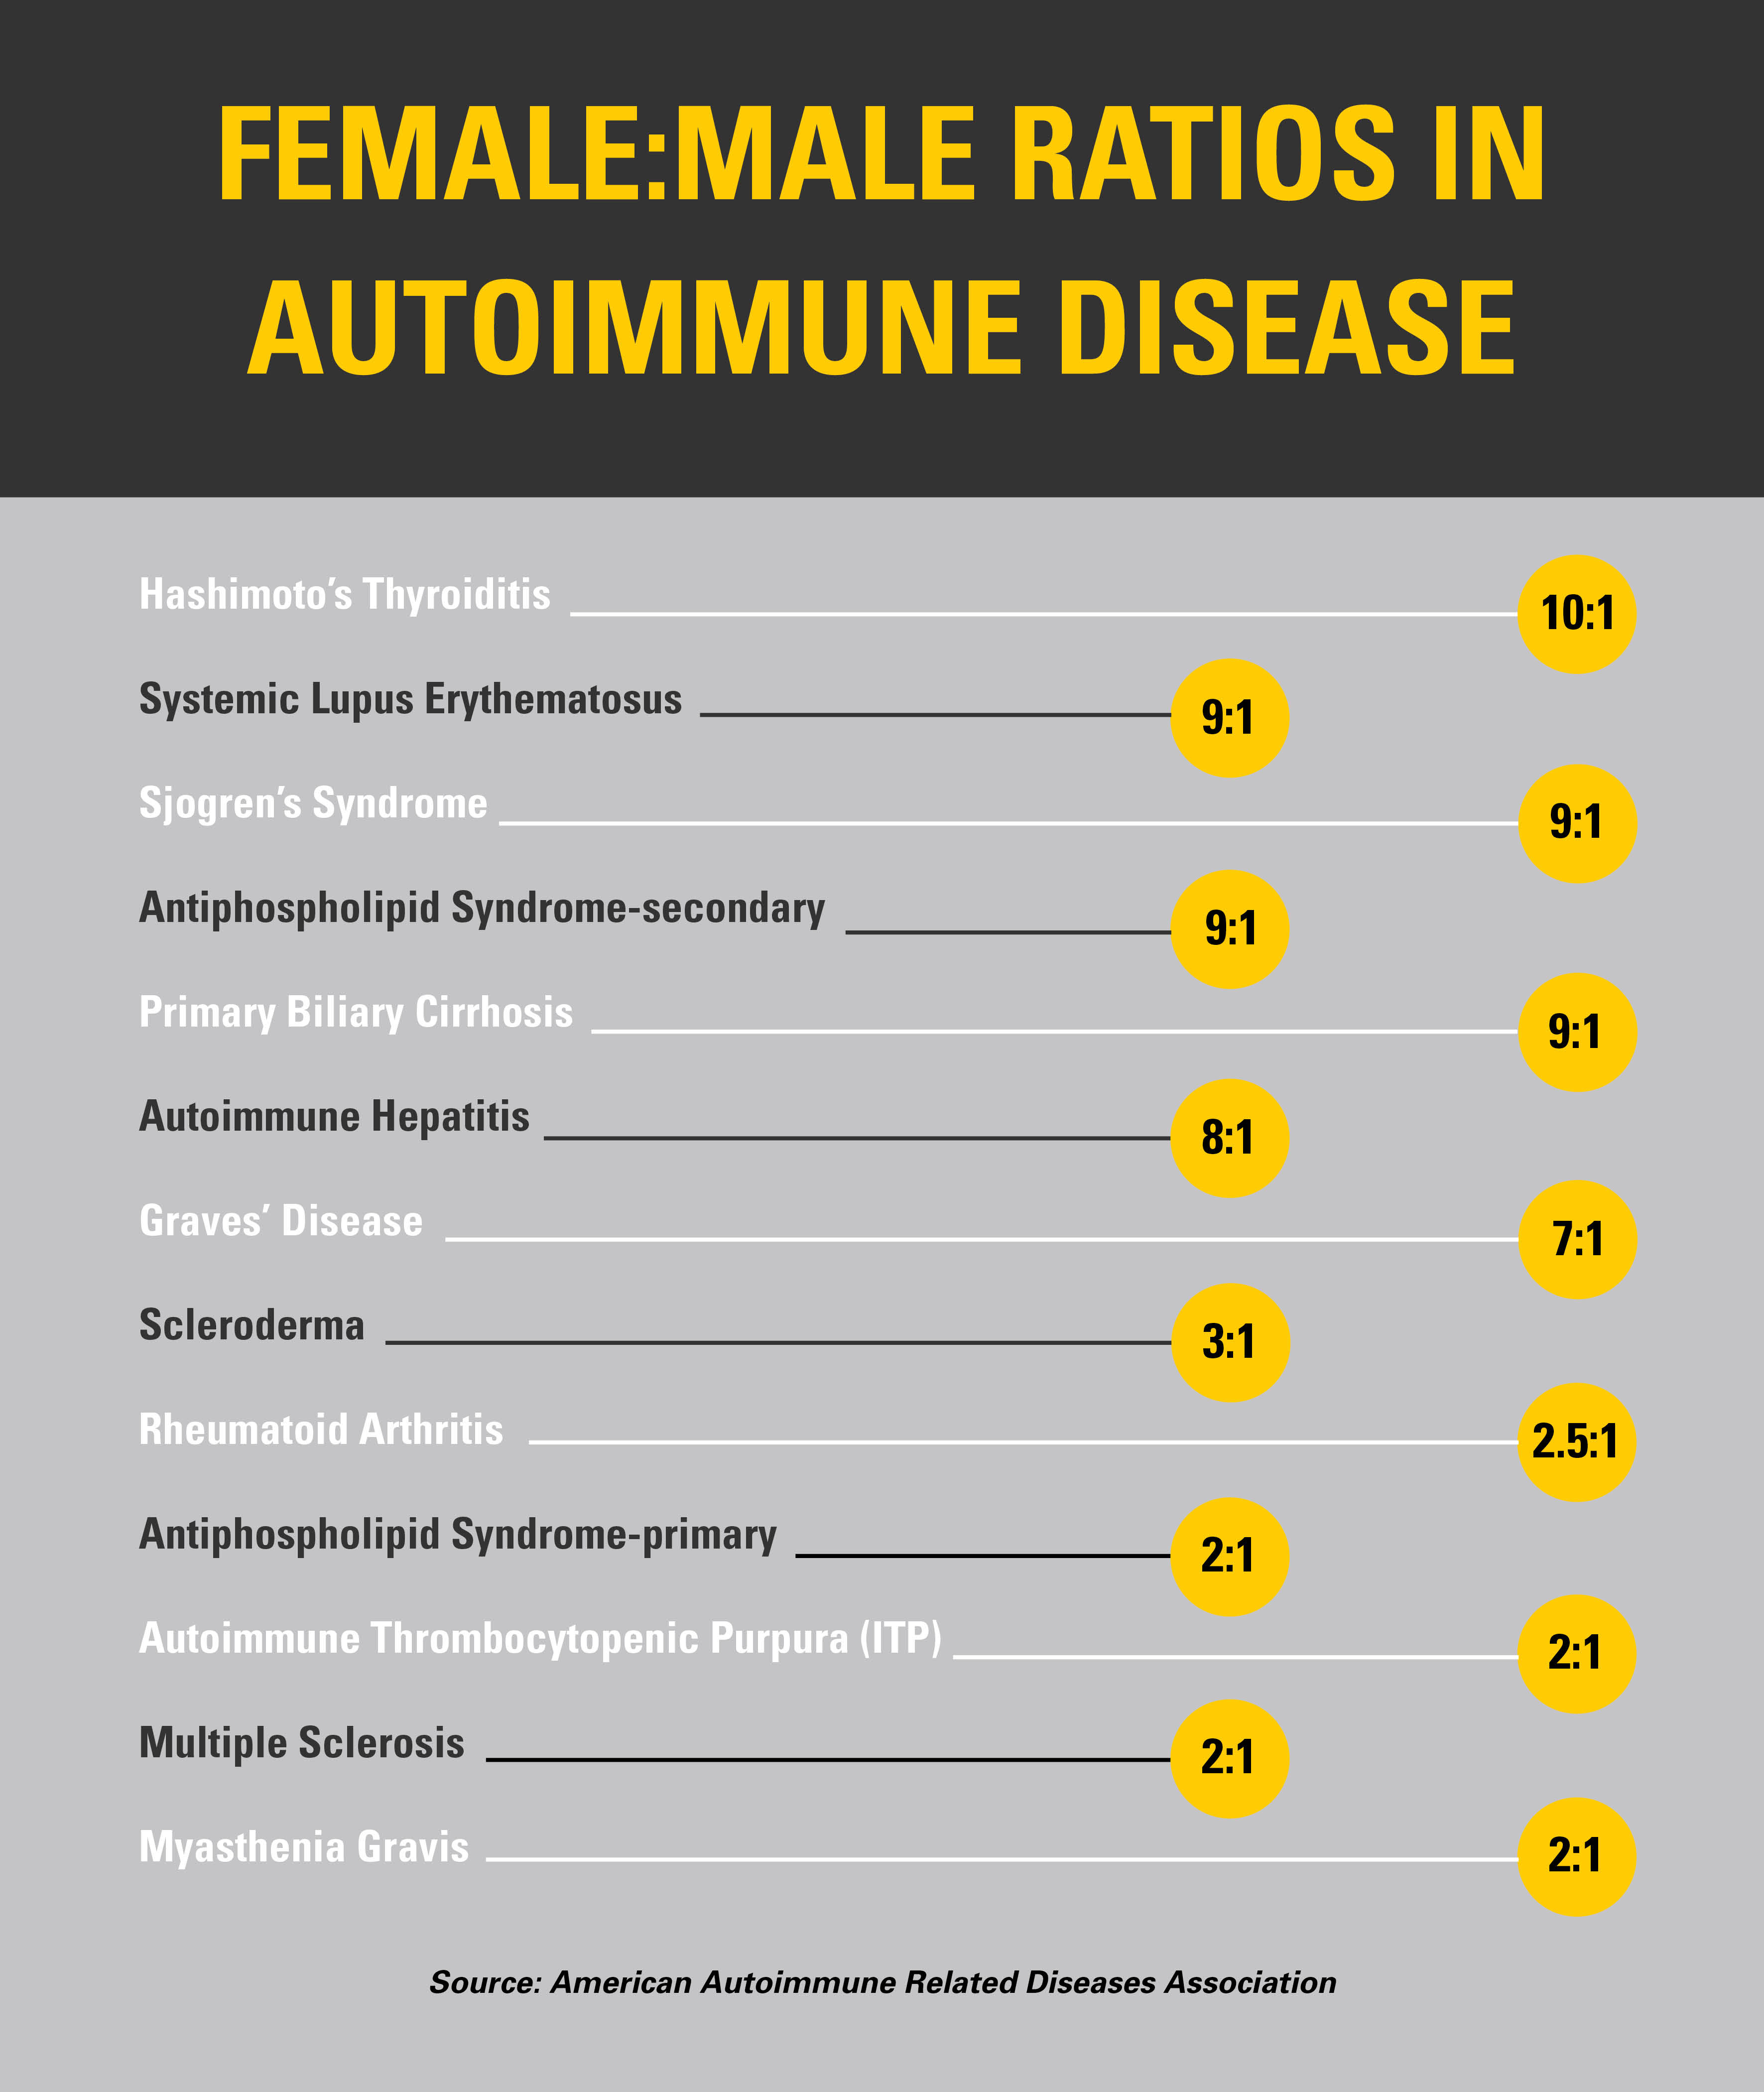 Table showing female to male ratios in autoimmune diseases